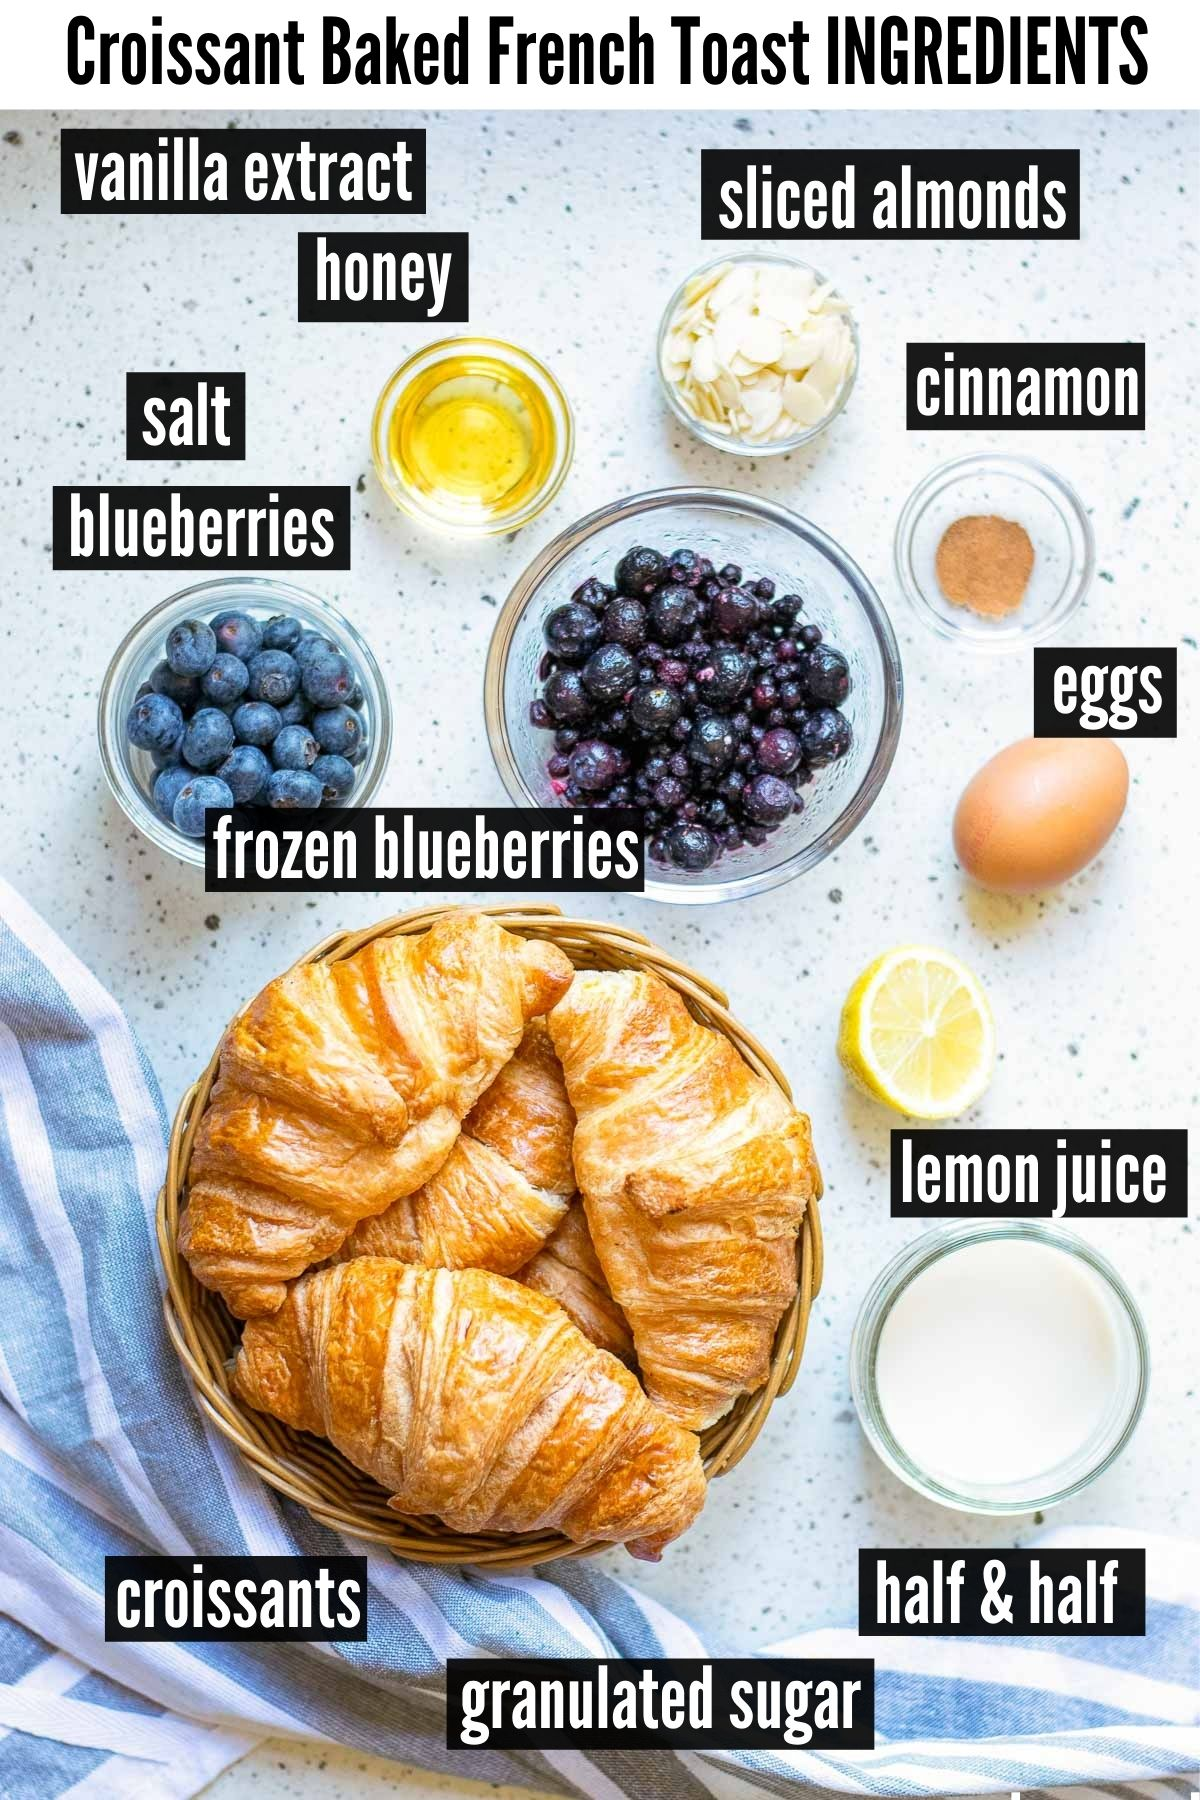 baked french toast ingredients